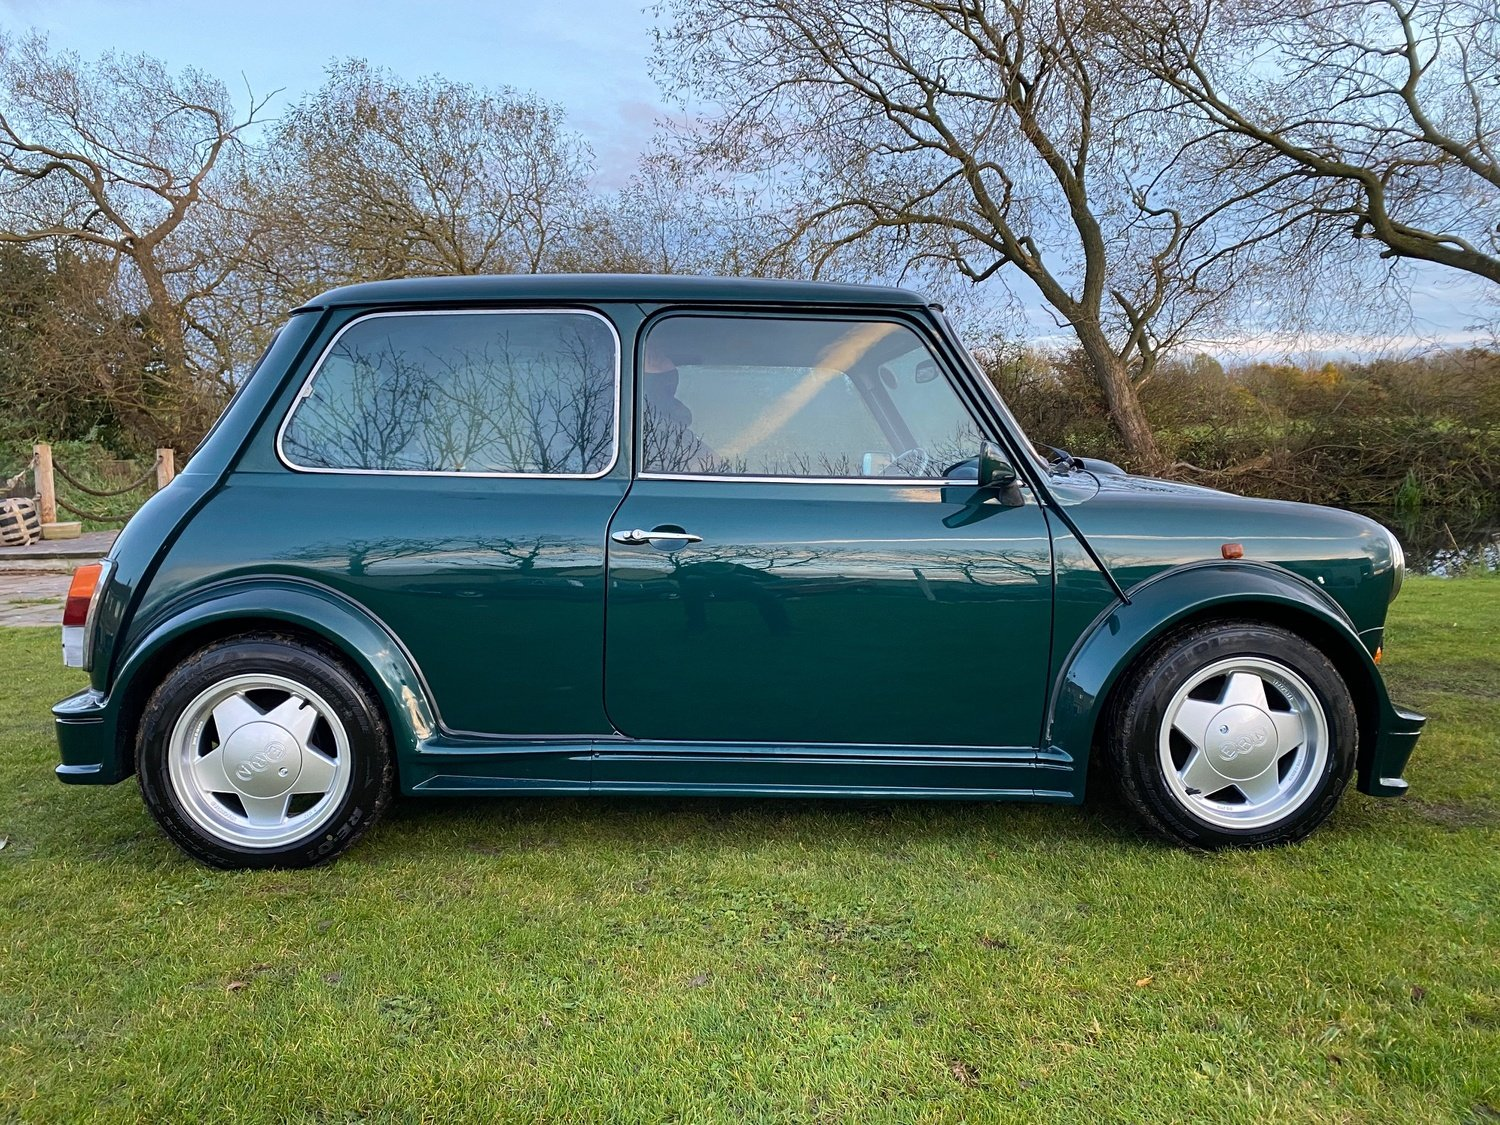 1992 ROVER MINI ERA TURBO VERY RARE VEHICLE * ONE OF ONLY 436 * For Sale (picture 3 of 6)